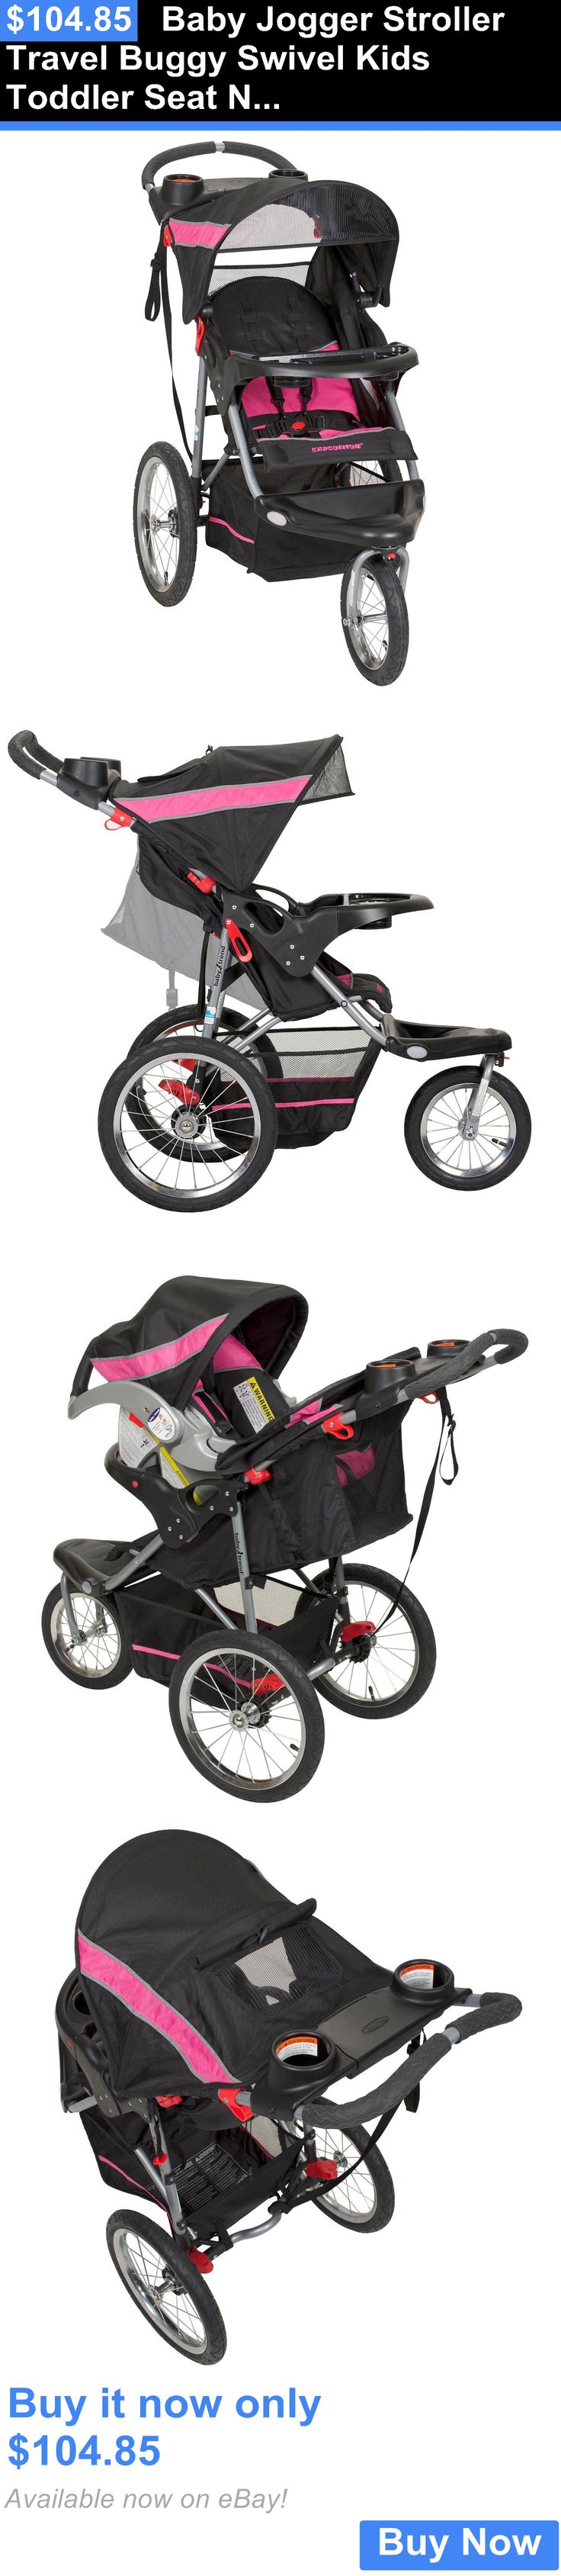 Baby: Baby Jogger Stroller Travel Buggy Swivel Kids Toddler Seat New BUY IT NOW ONLY: $104.85